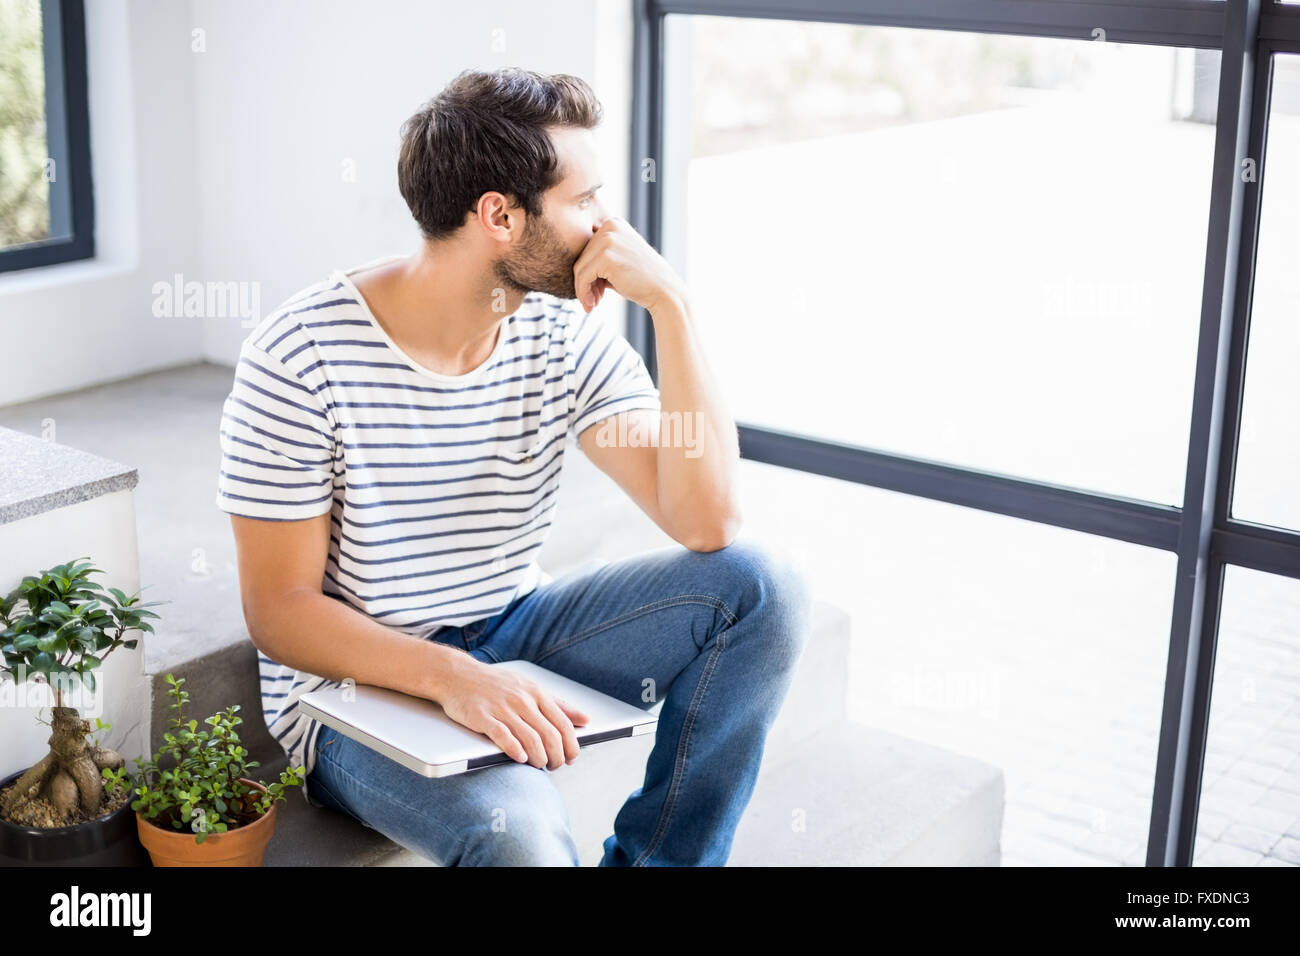 Man sitting with laptop looking out through window - Stock Image